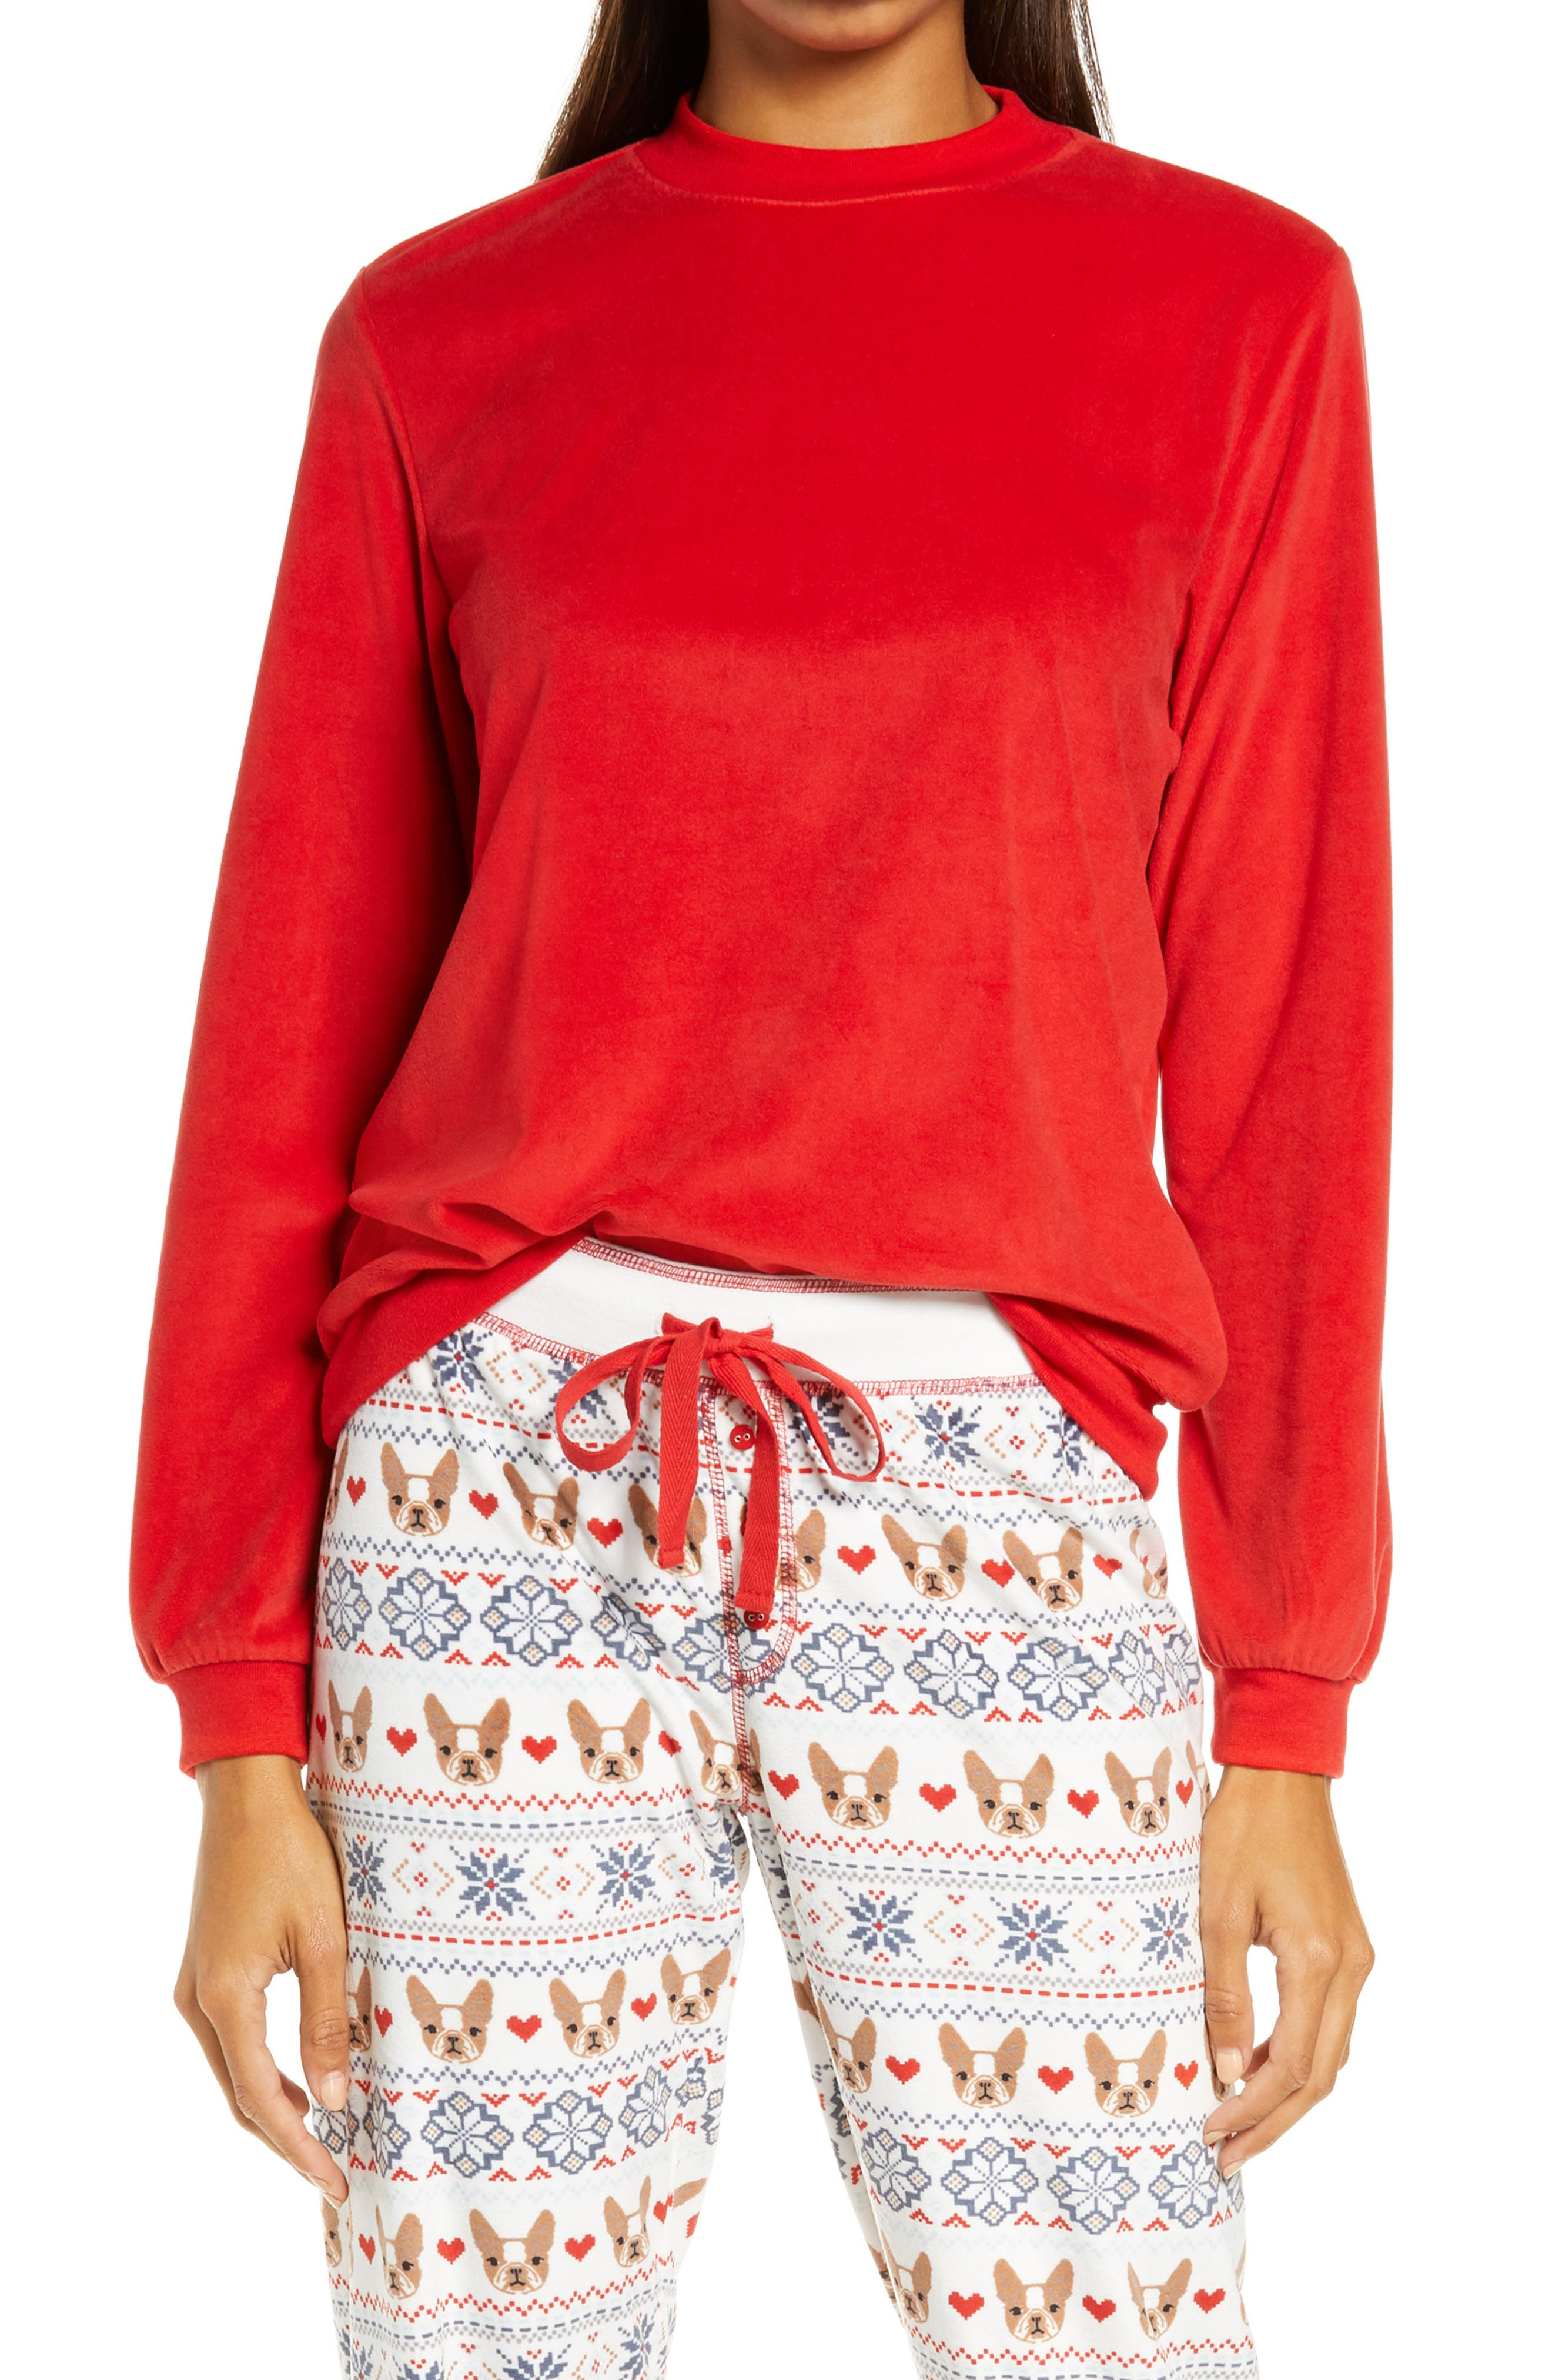 Women's Pj Salvage Silky Velour Mock Neck Top, Size X-Small - Red